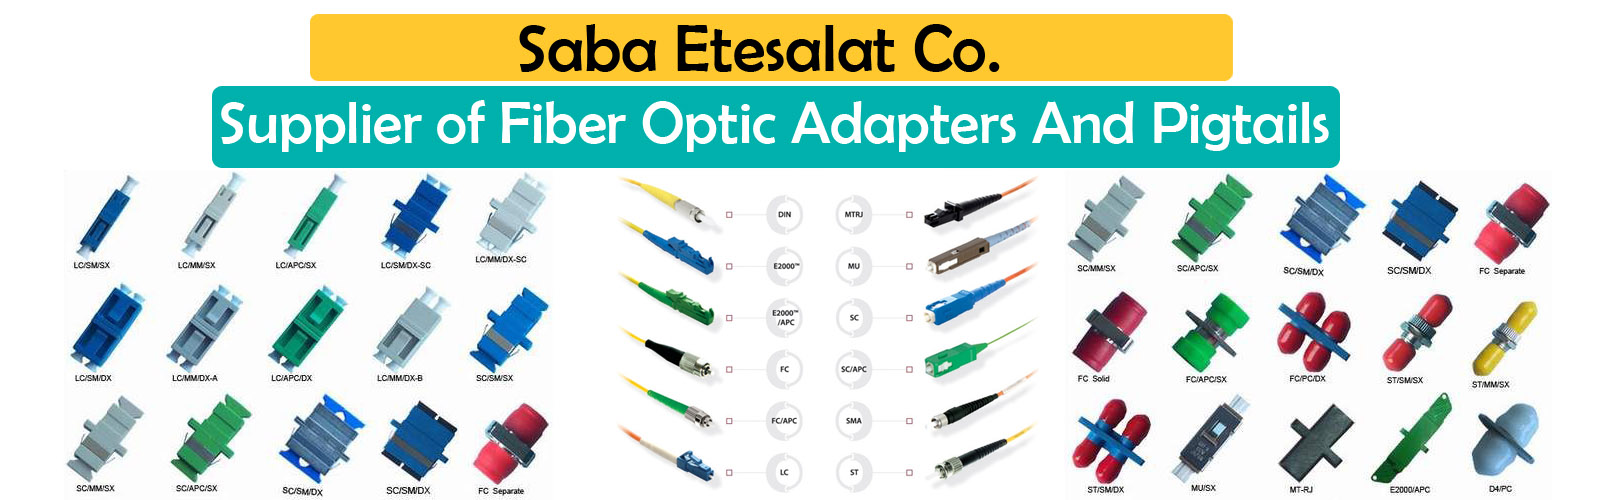 saba etesalat,fiber optic connectors